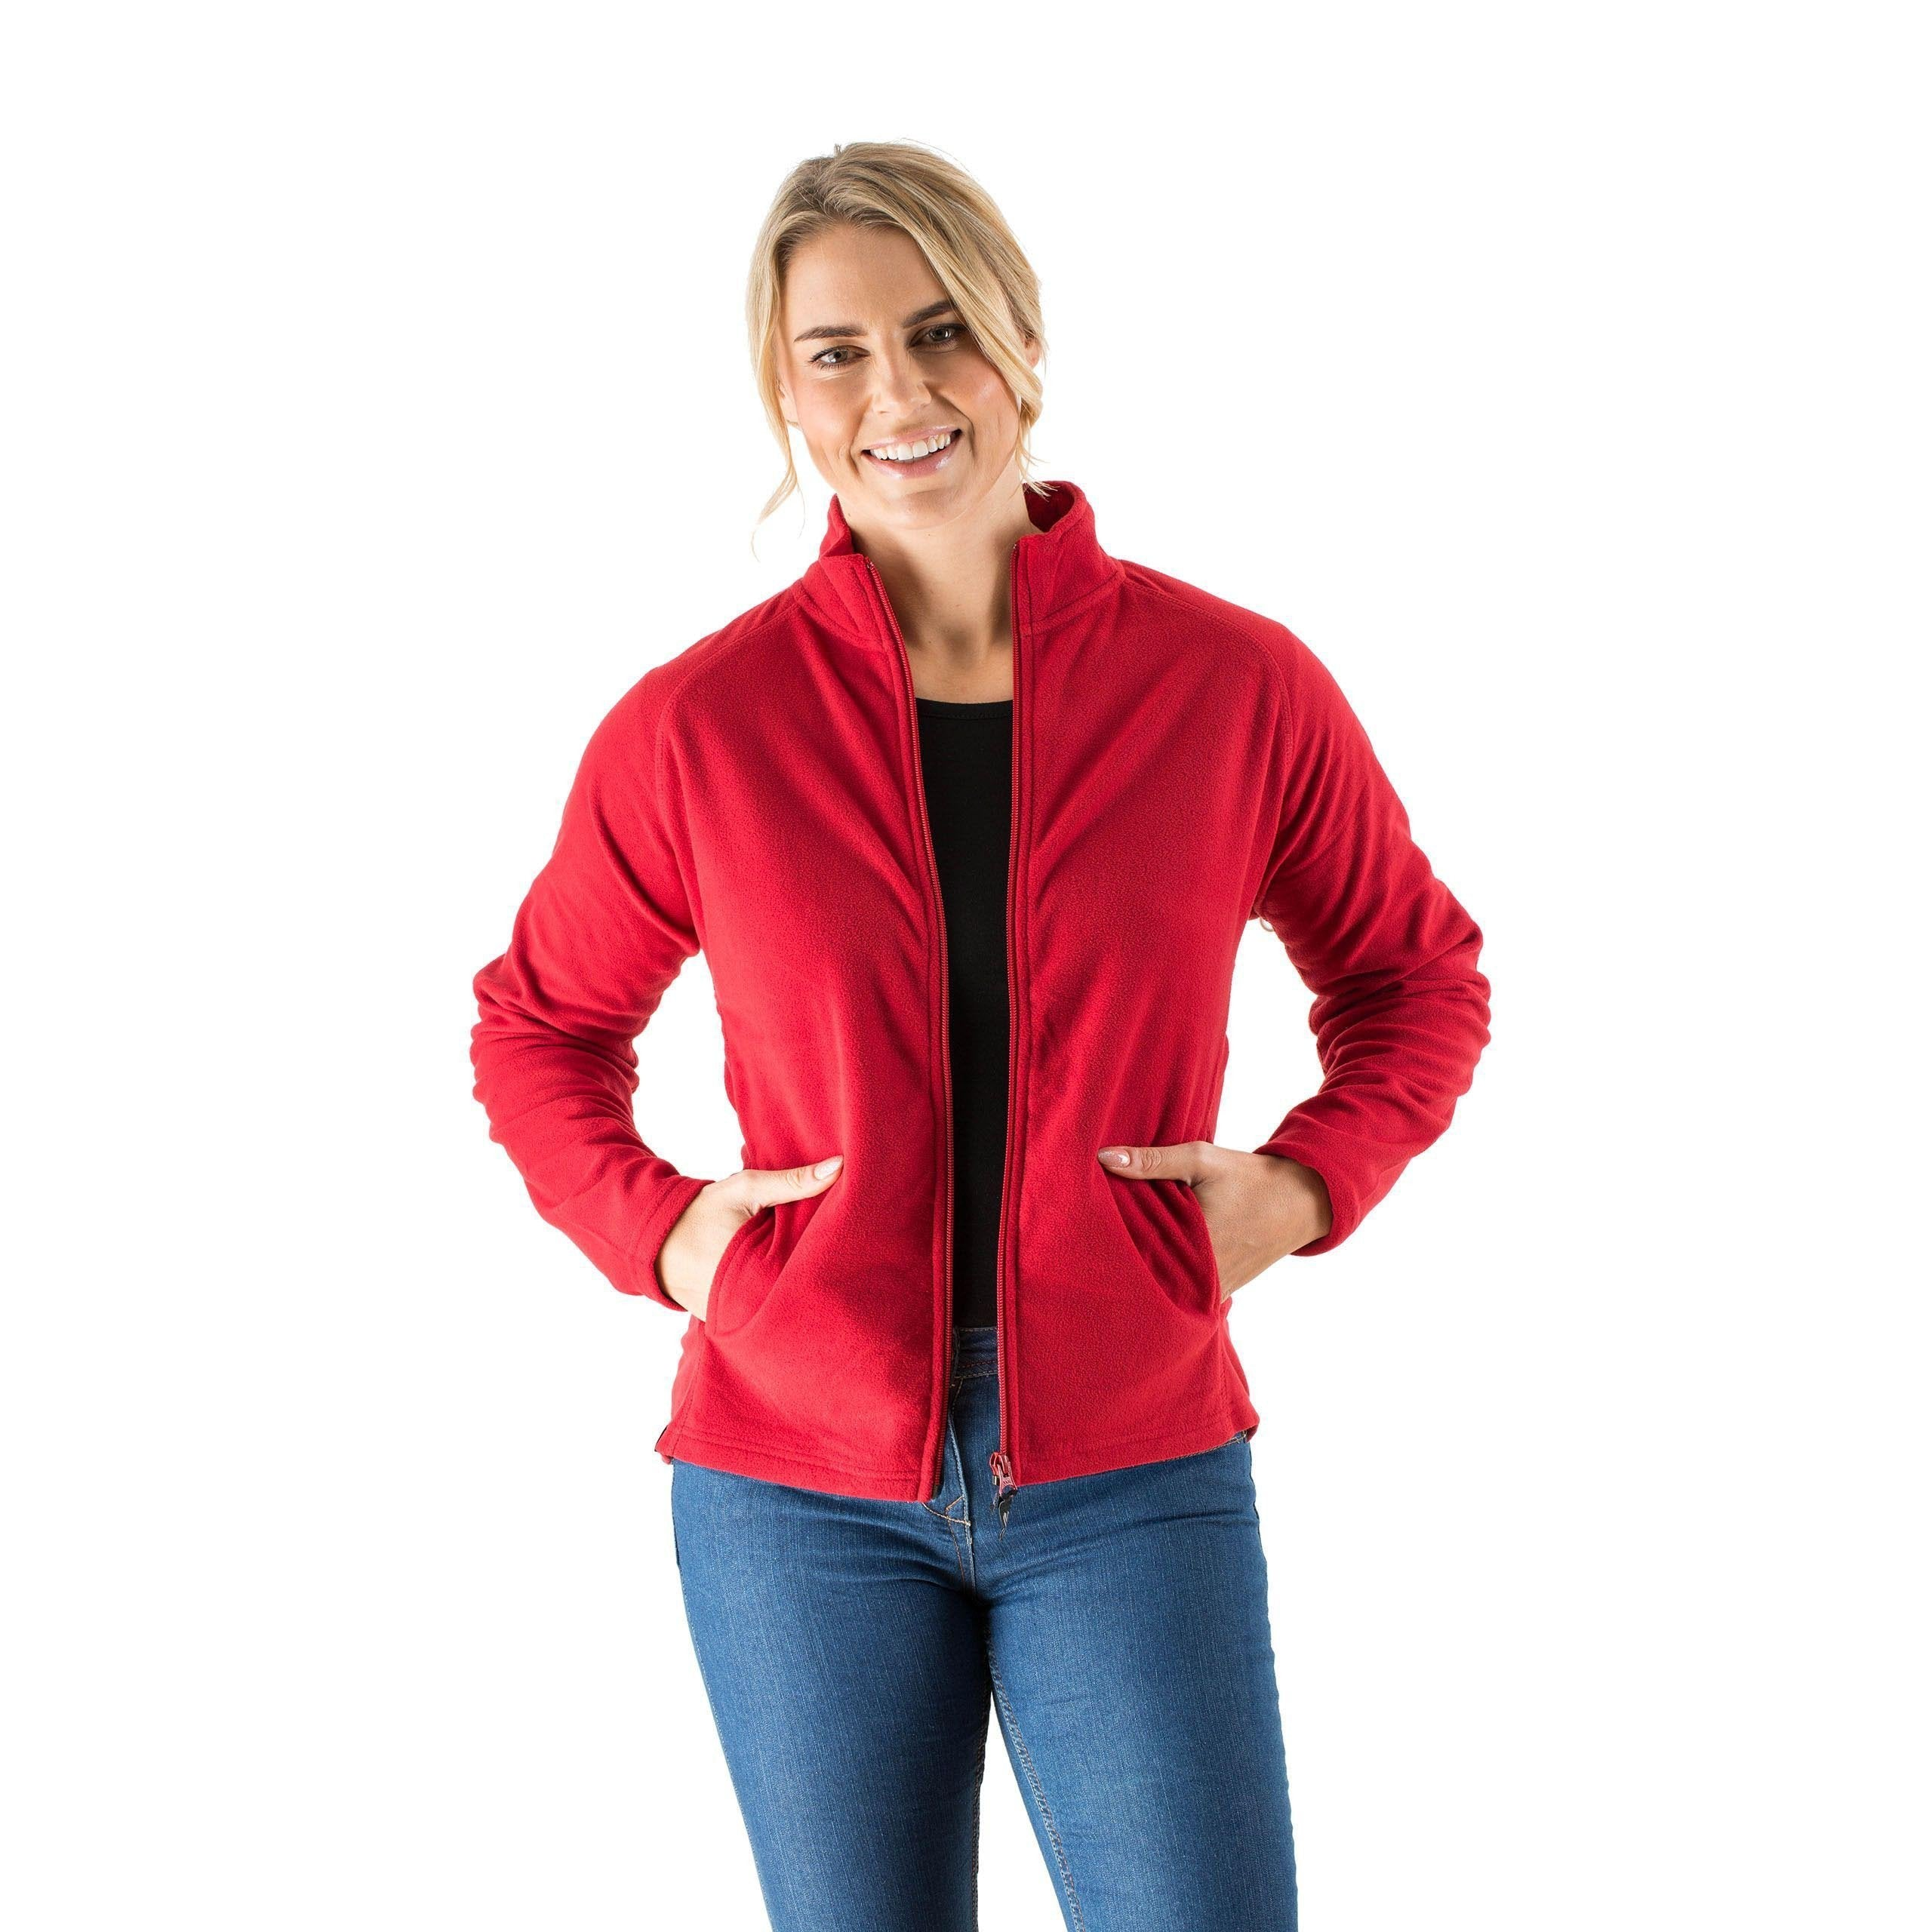 collections/Womens_midlayer_Jacket_Red_open.jpg